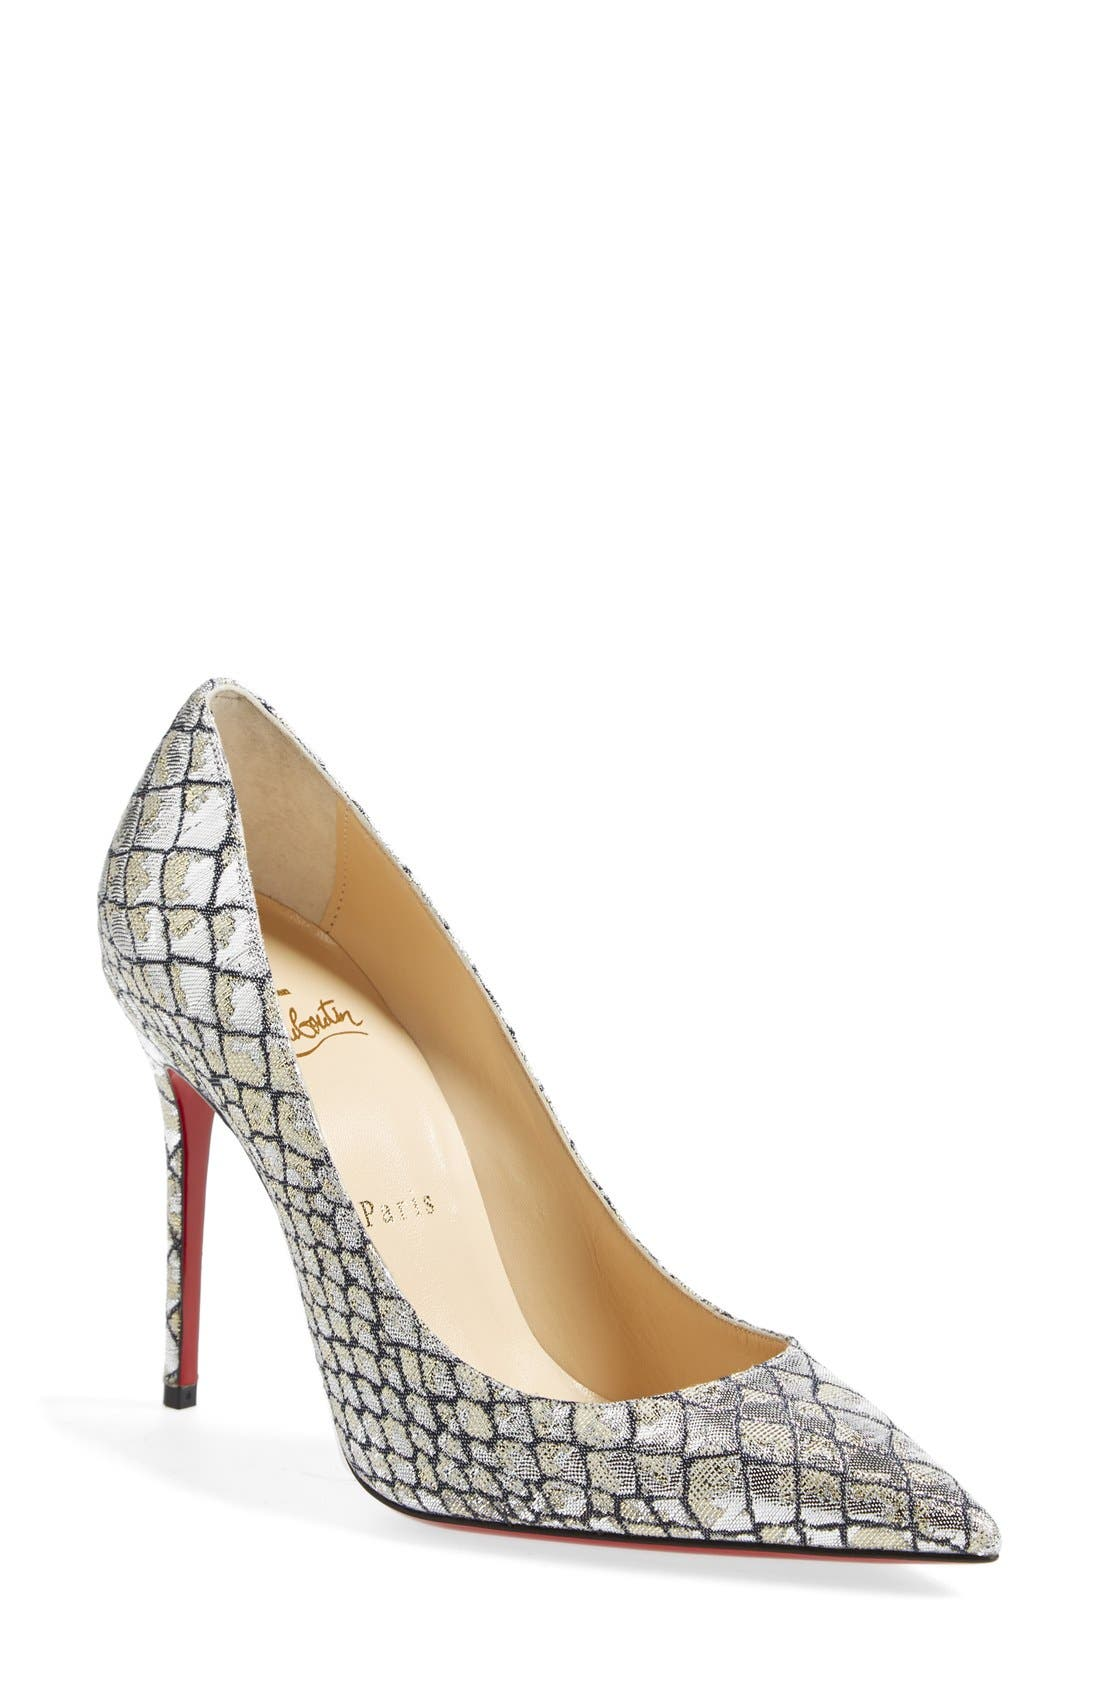 Main Image - Christian Louboutin 'Decollete' Pointy Toe Pump